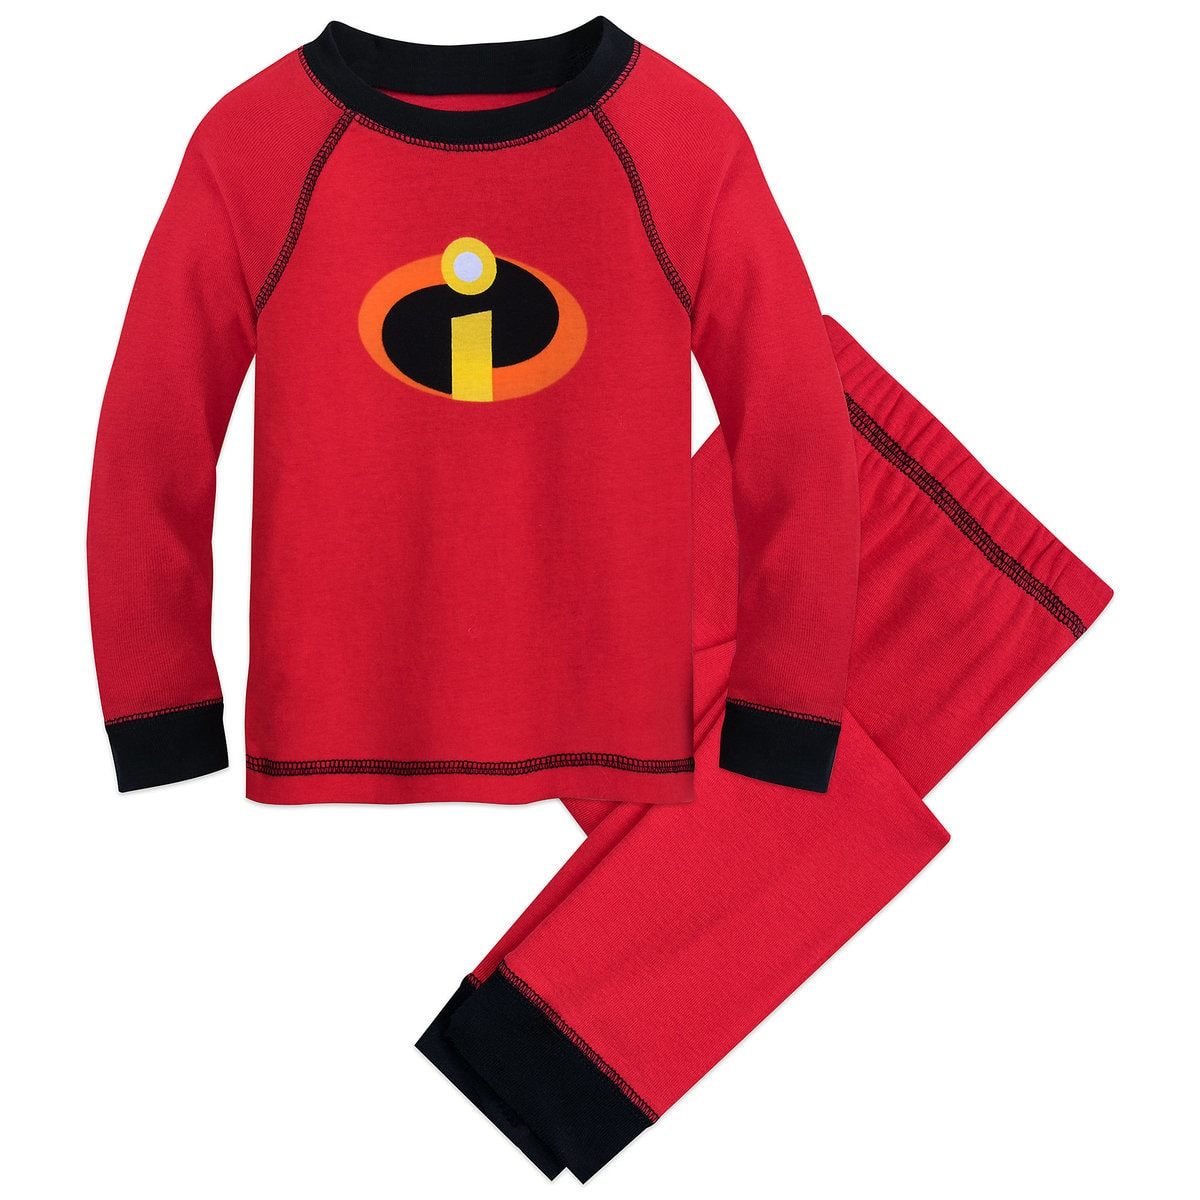 Toddler Incredibles pajamas | Top 25 Disney Gift Ideas for Toddlers featured by top US Disney blogger, Marcie and the Mouse